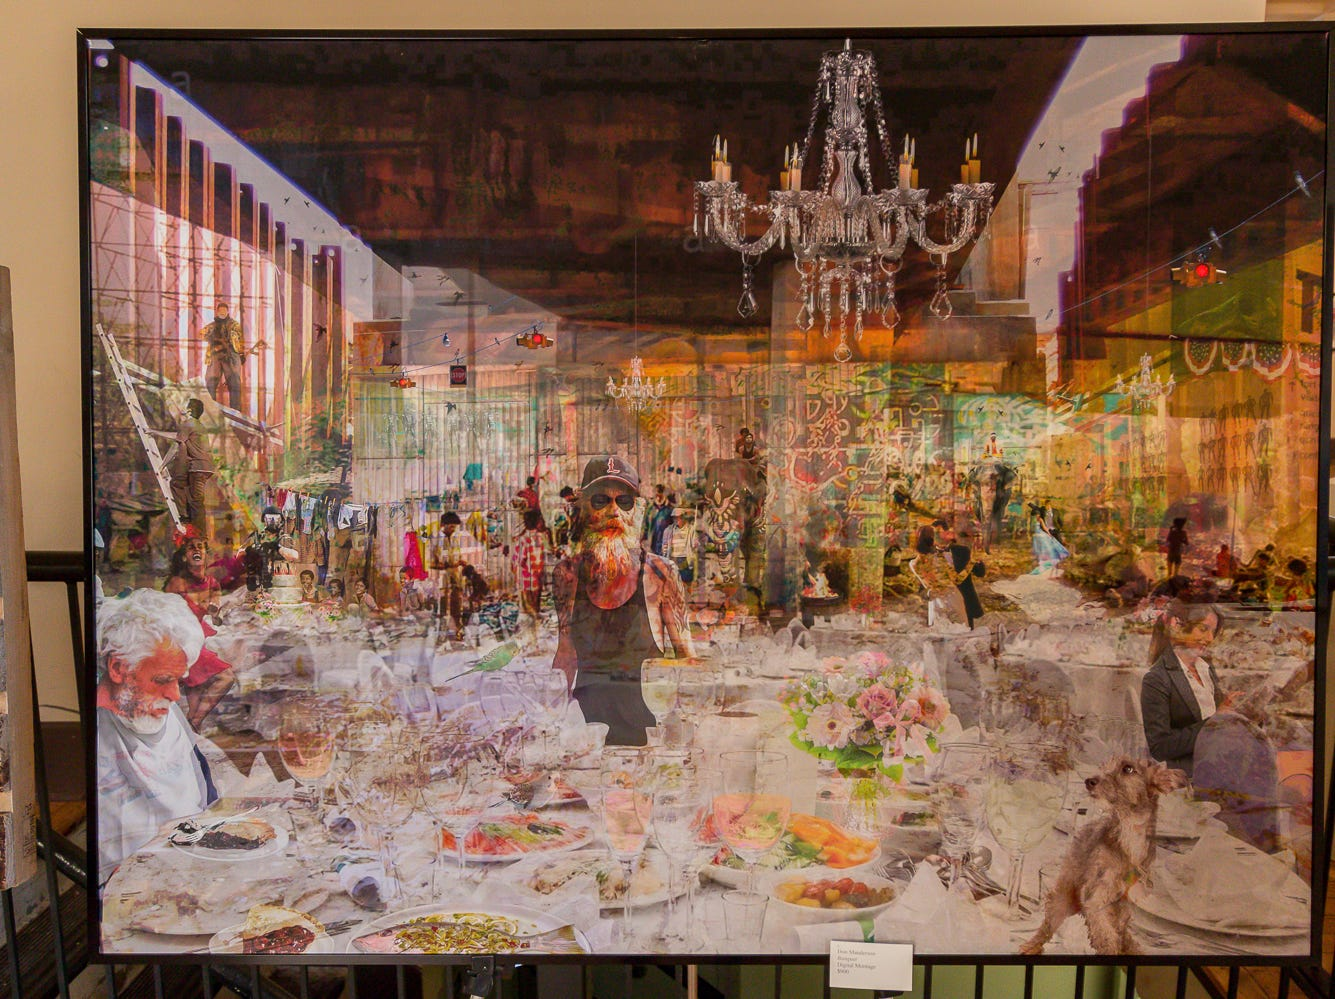 """Banquet"" by Don Manderson is one of over 100 pieces on display as part of the ""Cinco Banderas Collection"" at the Artel Gallery on Tuesday, October 30, 2018. The exhibit, which runs through November 30, is celebrating its 30th anniversary this year."